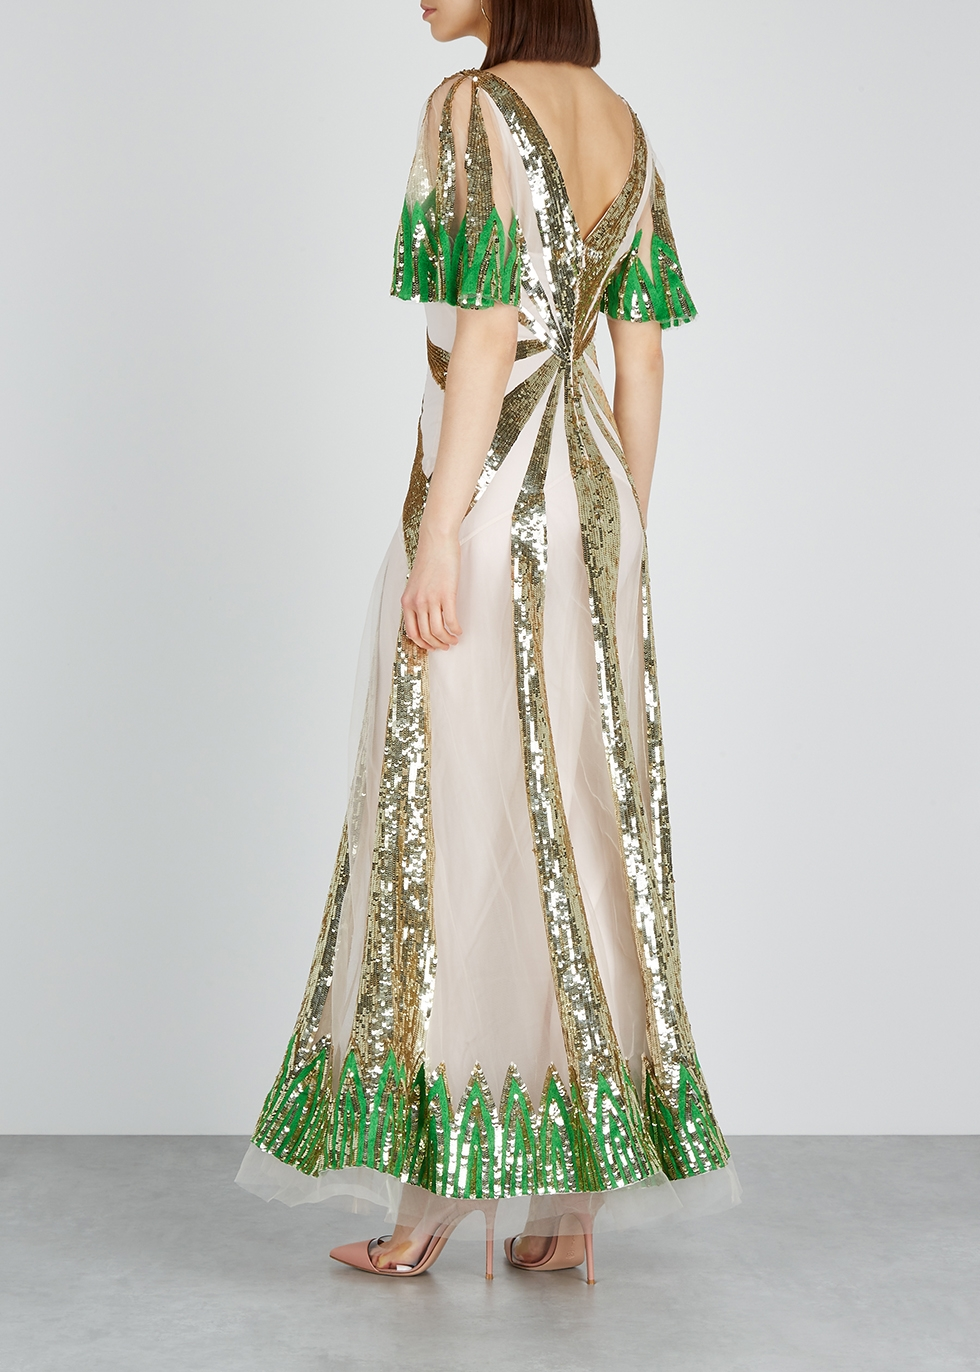 Sycamore sequinned tulle gown - Temperley